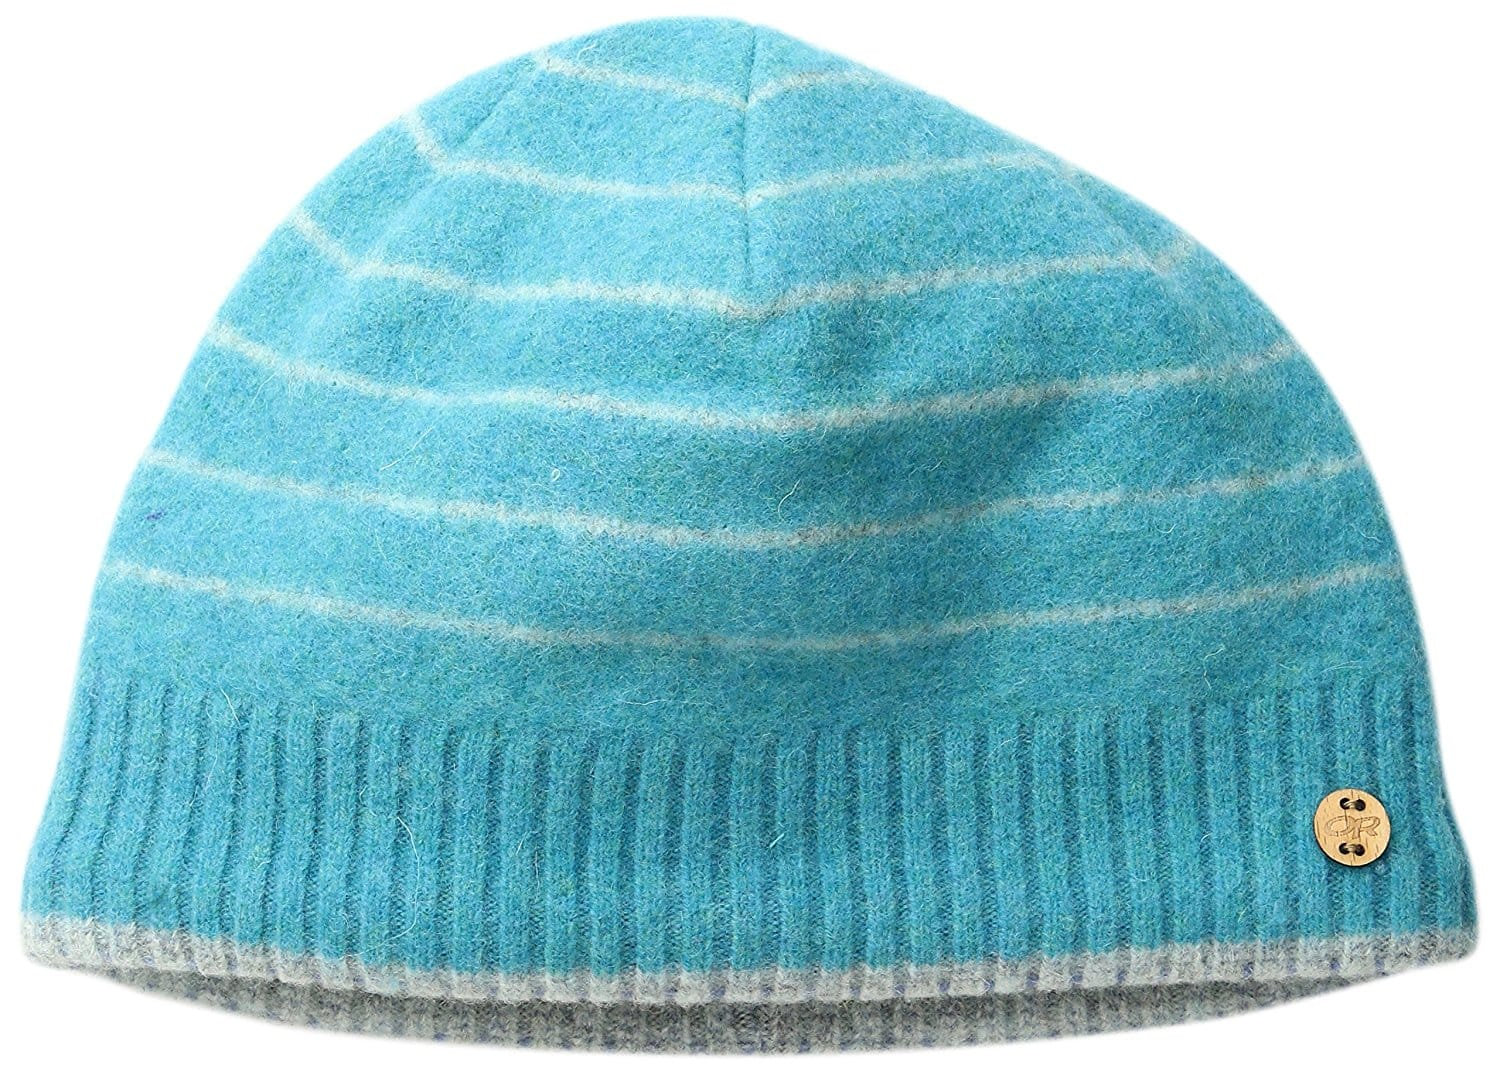 Amazon.con: Add-on item - Outdoor Research Beanie $2.12 free shipping order $25